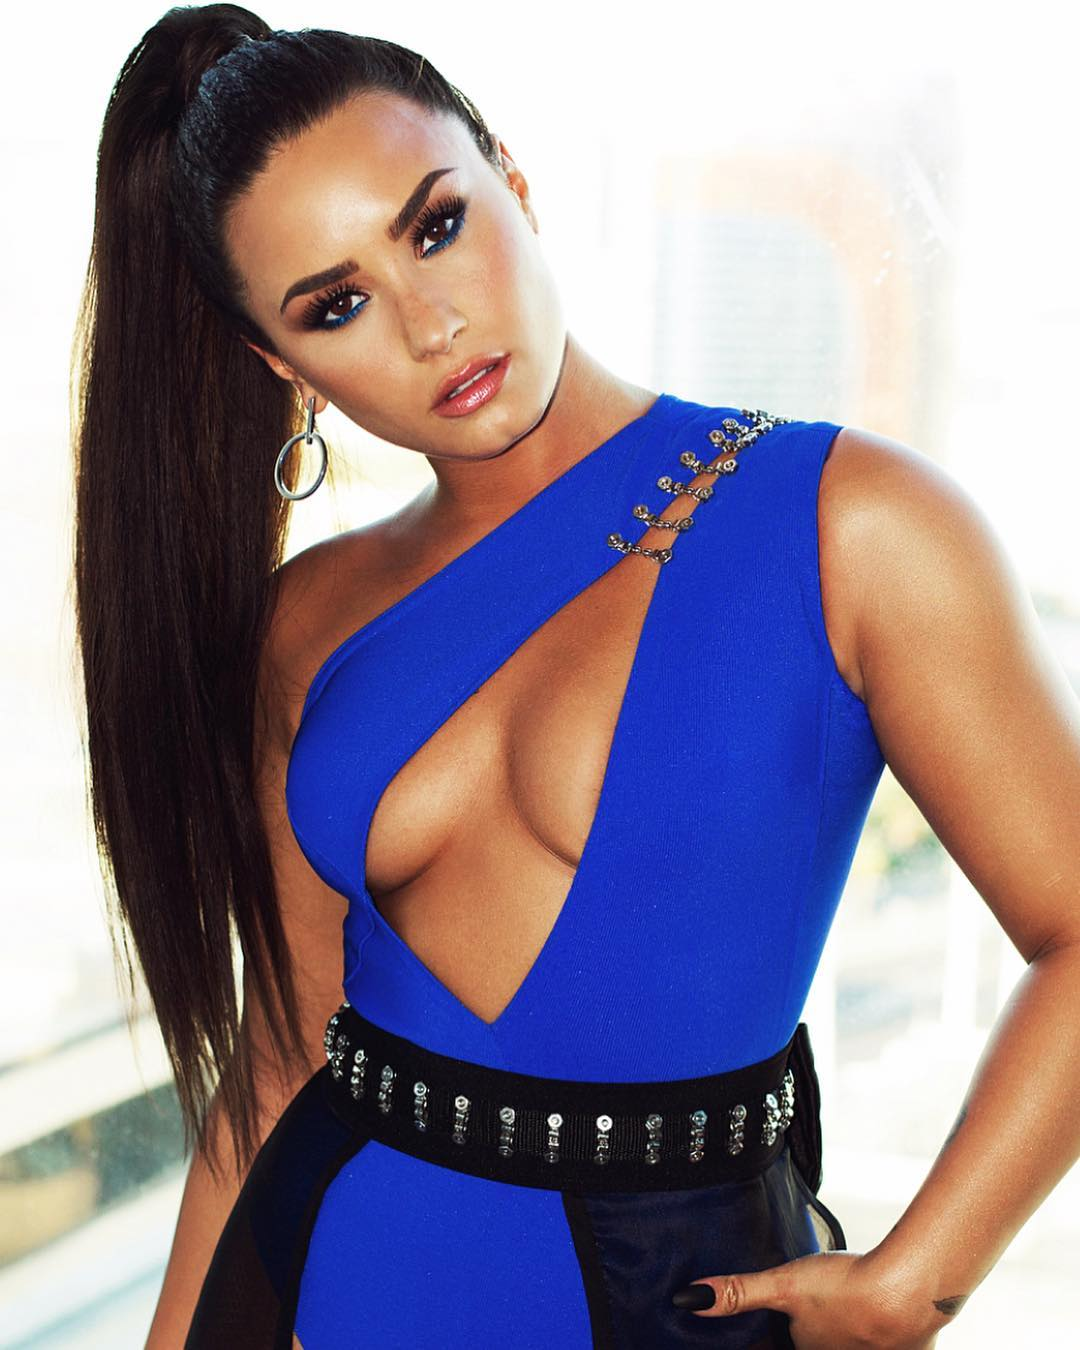 Demi Lovato Wearing A Sexy Cut Blue-Black Ensemble 2020